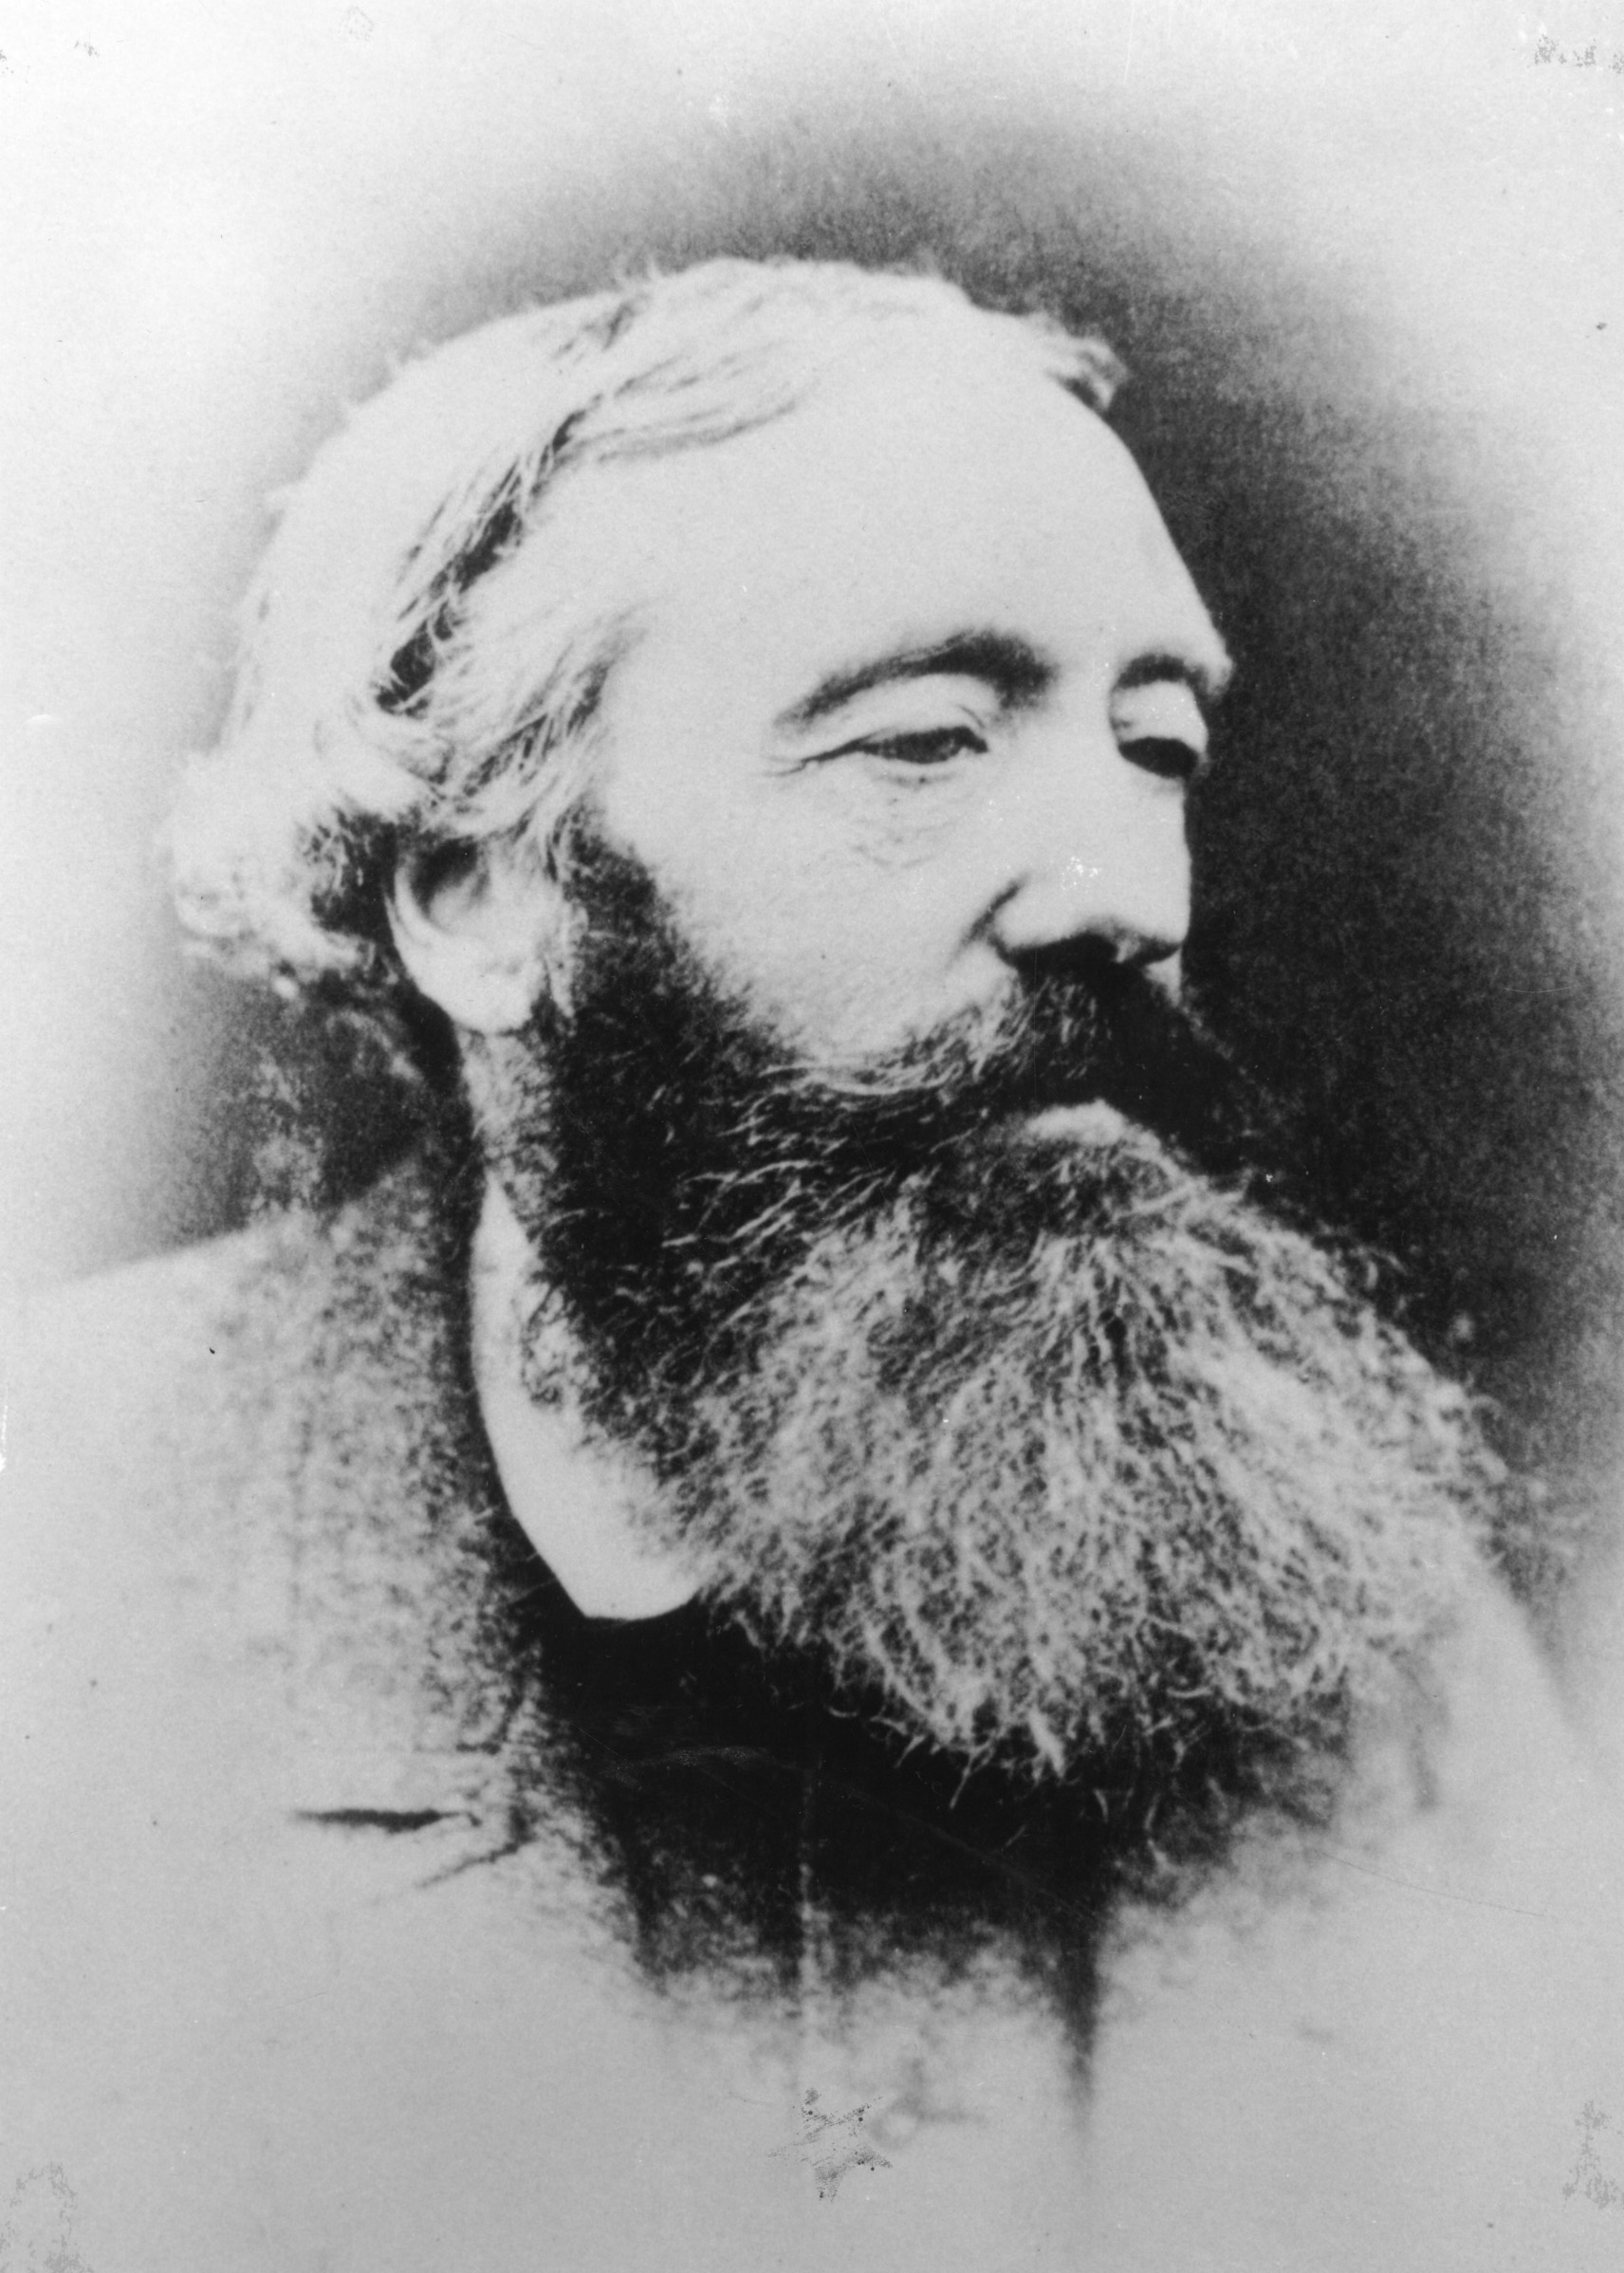 Photo of Walter Traill Dennison, Orkney folklorist from the Orkney island of Sanday who collected folk tales from Orcadians.